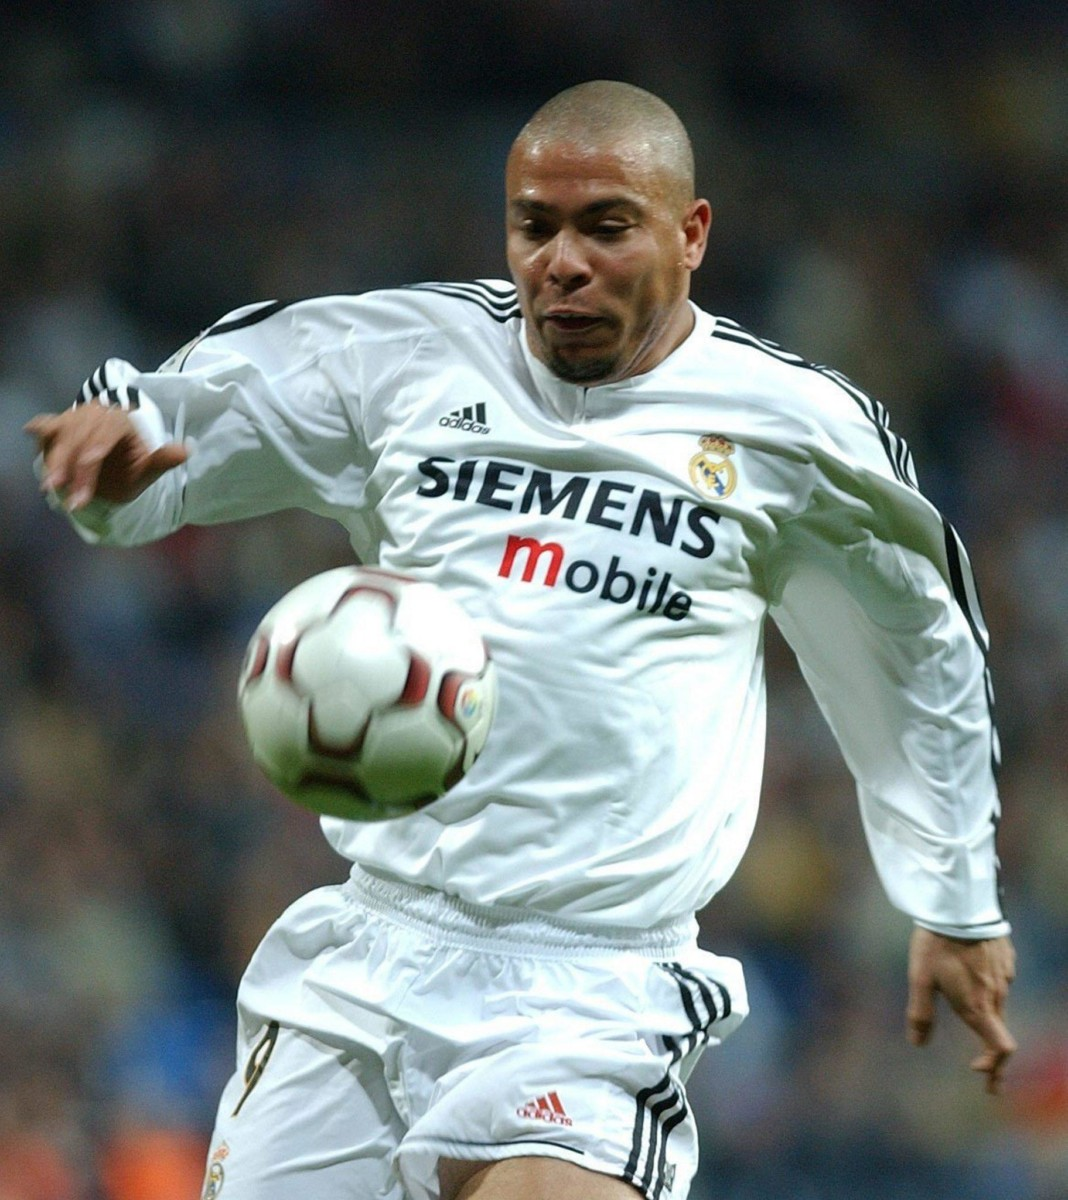 Ronaldo never won the Champions League with Real Madrid